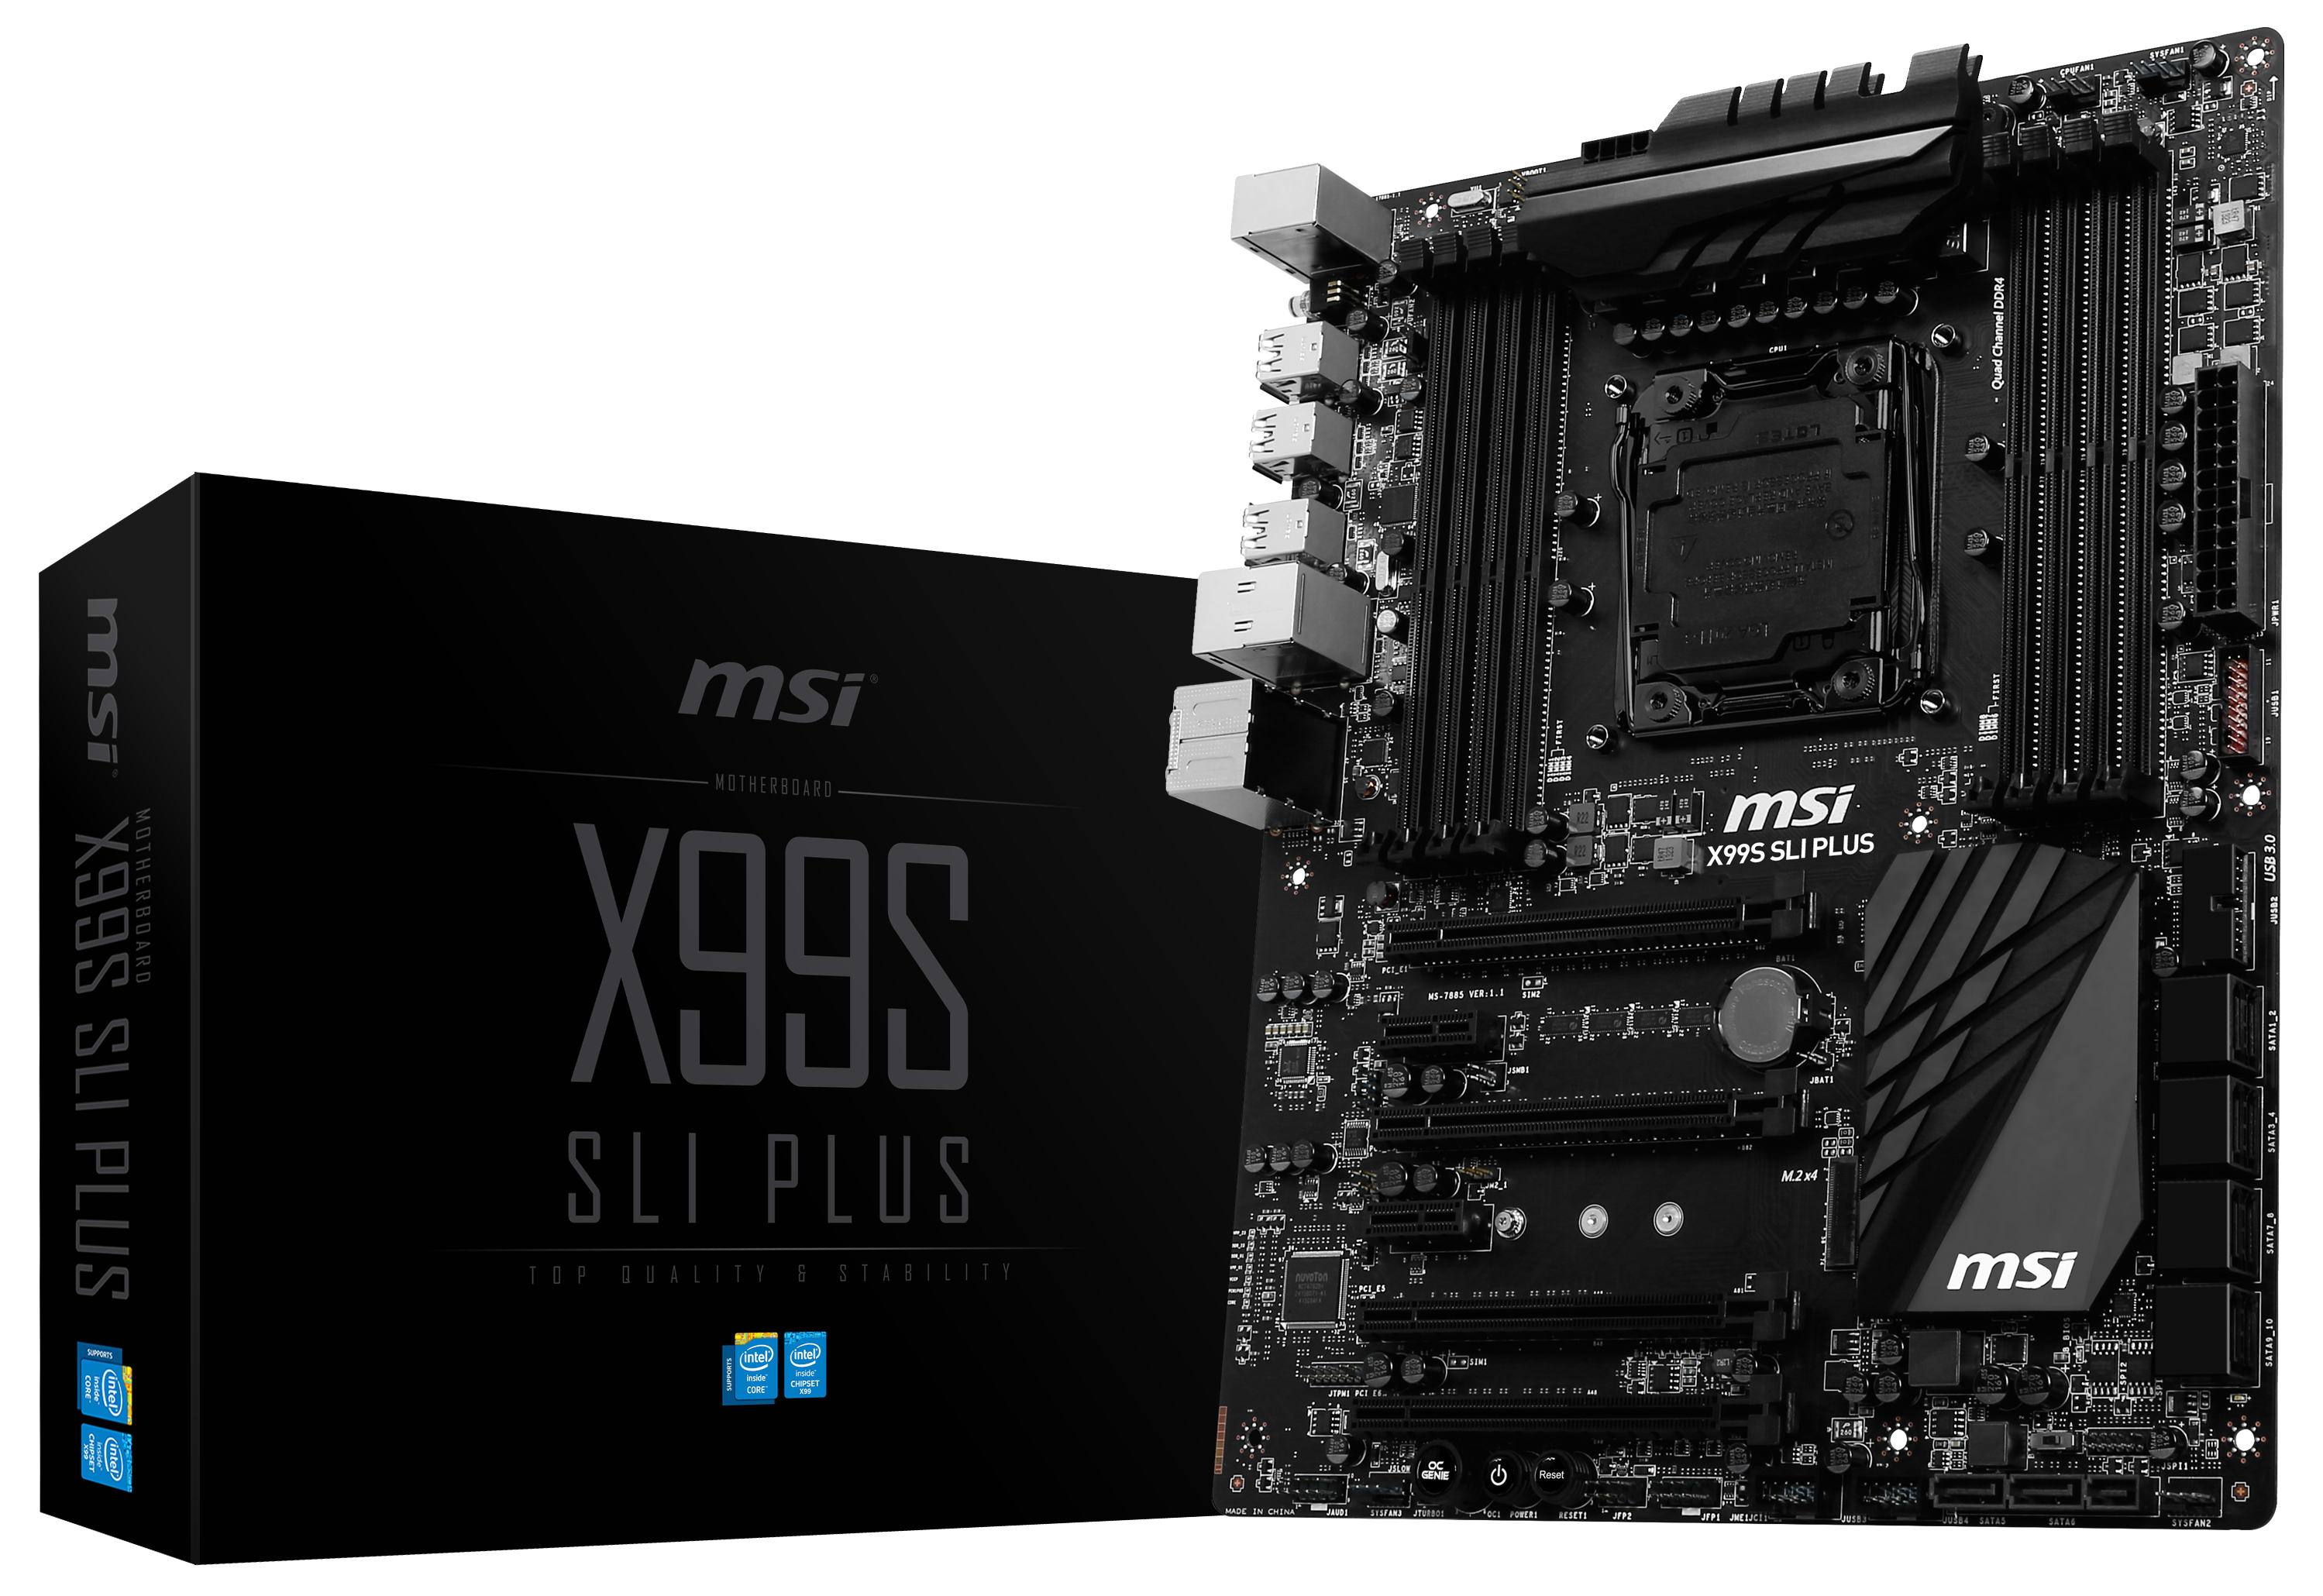 MSI X99S SLI Plus Overview, Board Features - The Intel Haswell-E X99